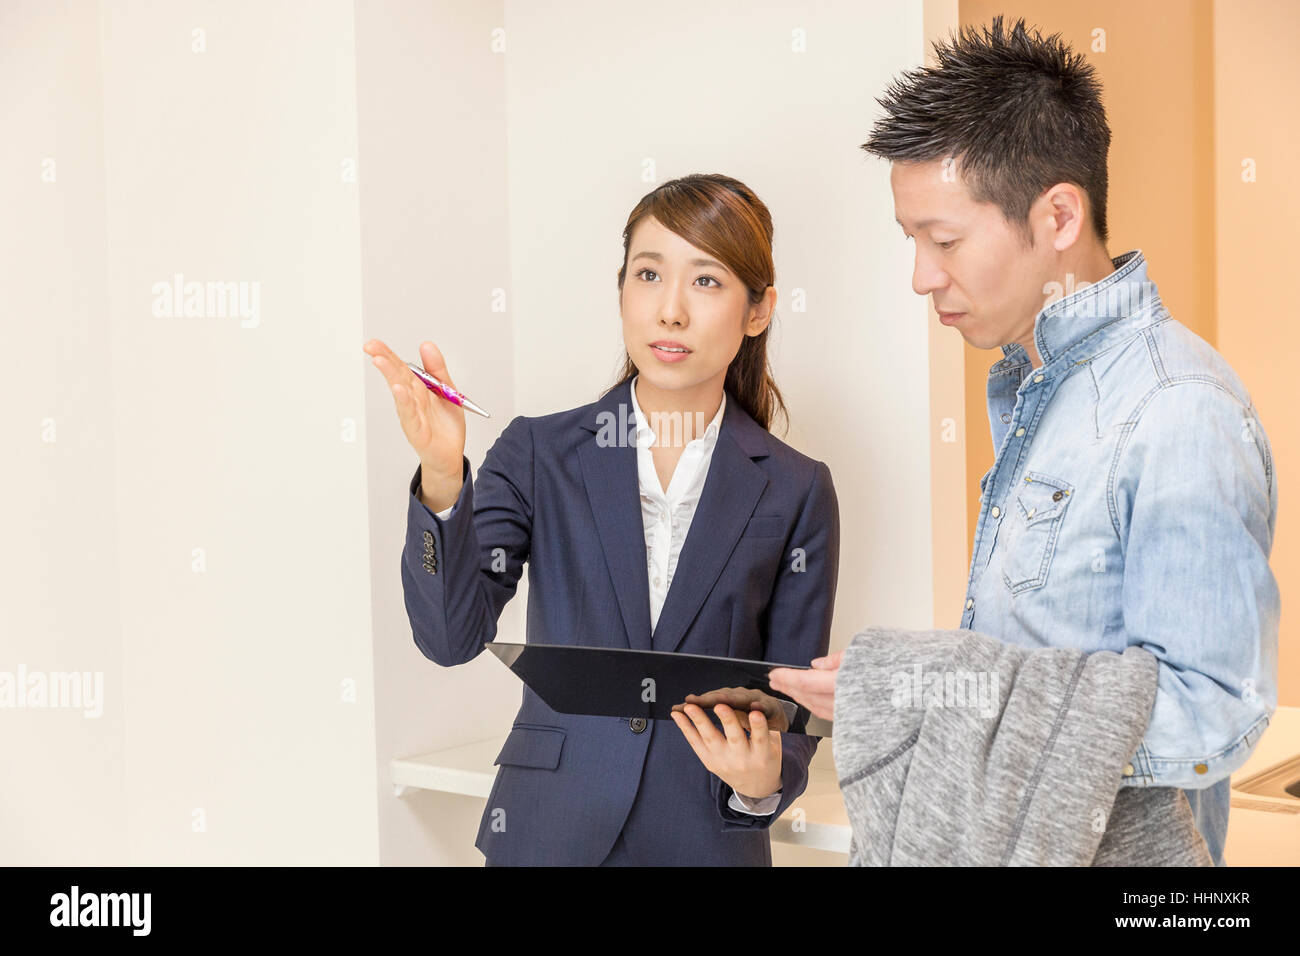 Real Estate Agent Showing Apartment to Buyers - Stock Image